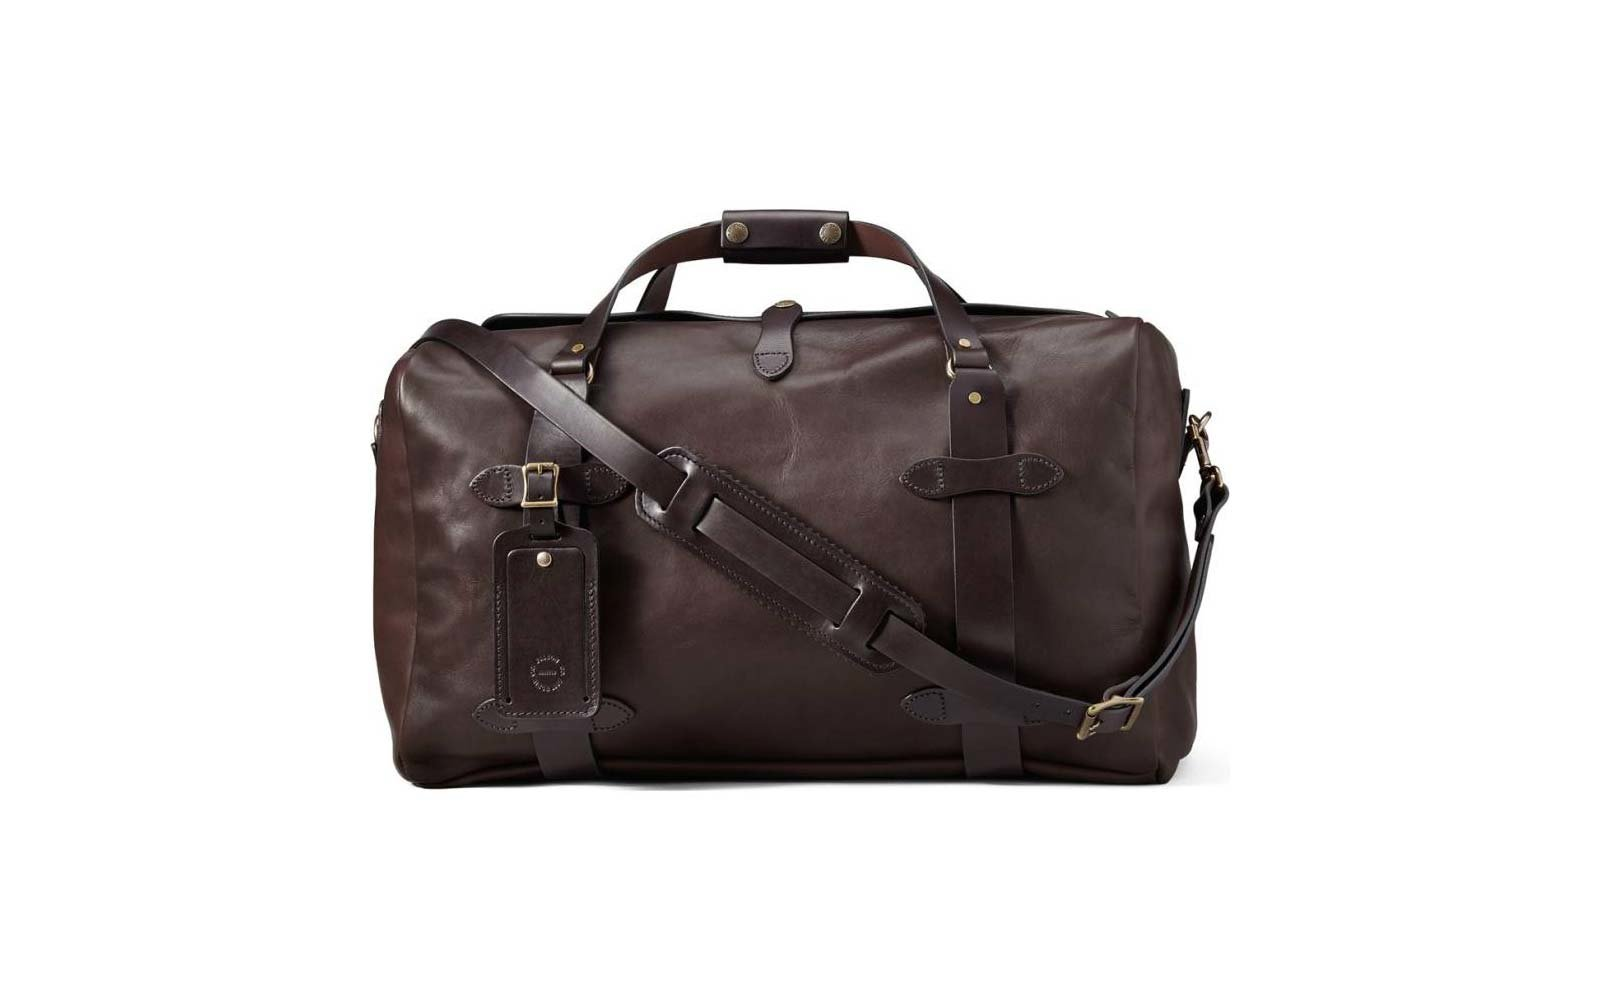 Filson leather bag